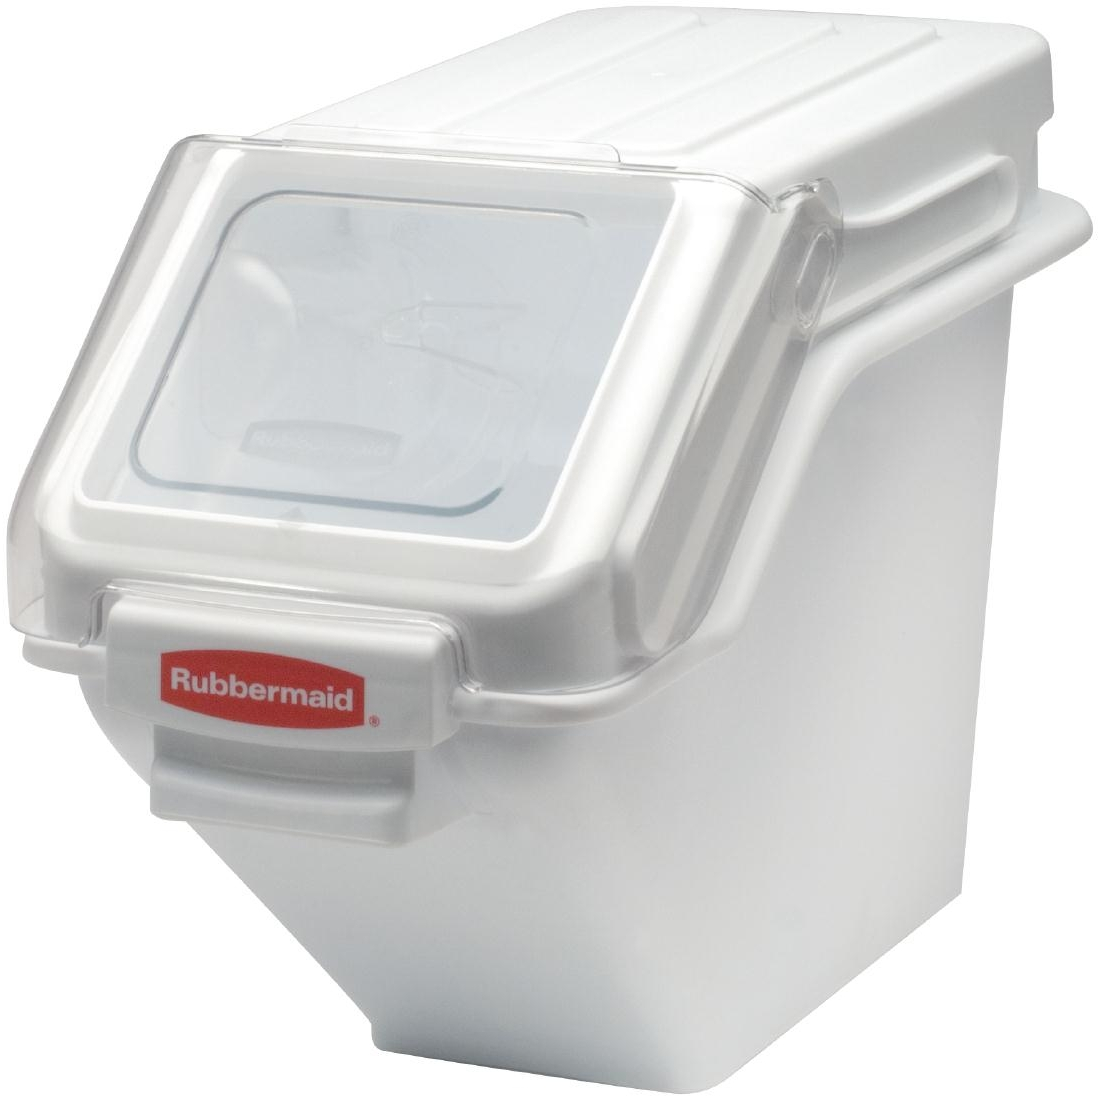 Bac à ingrédients empilable 47L Rubbermaid